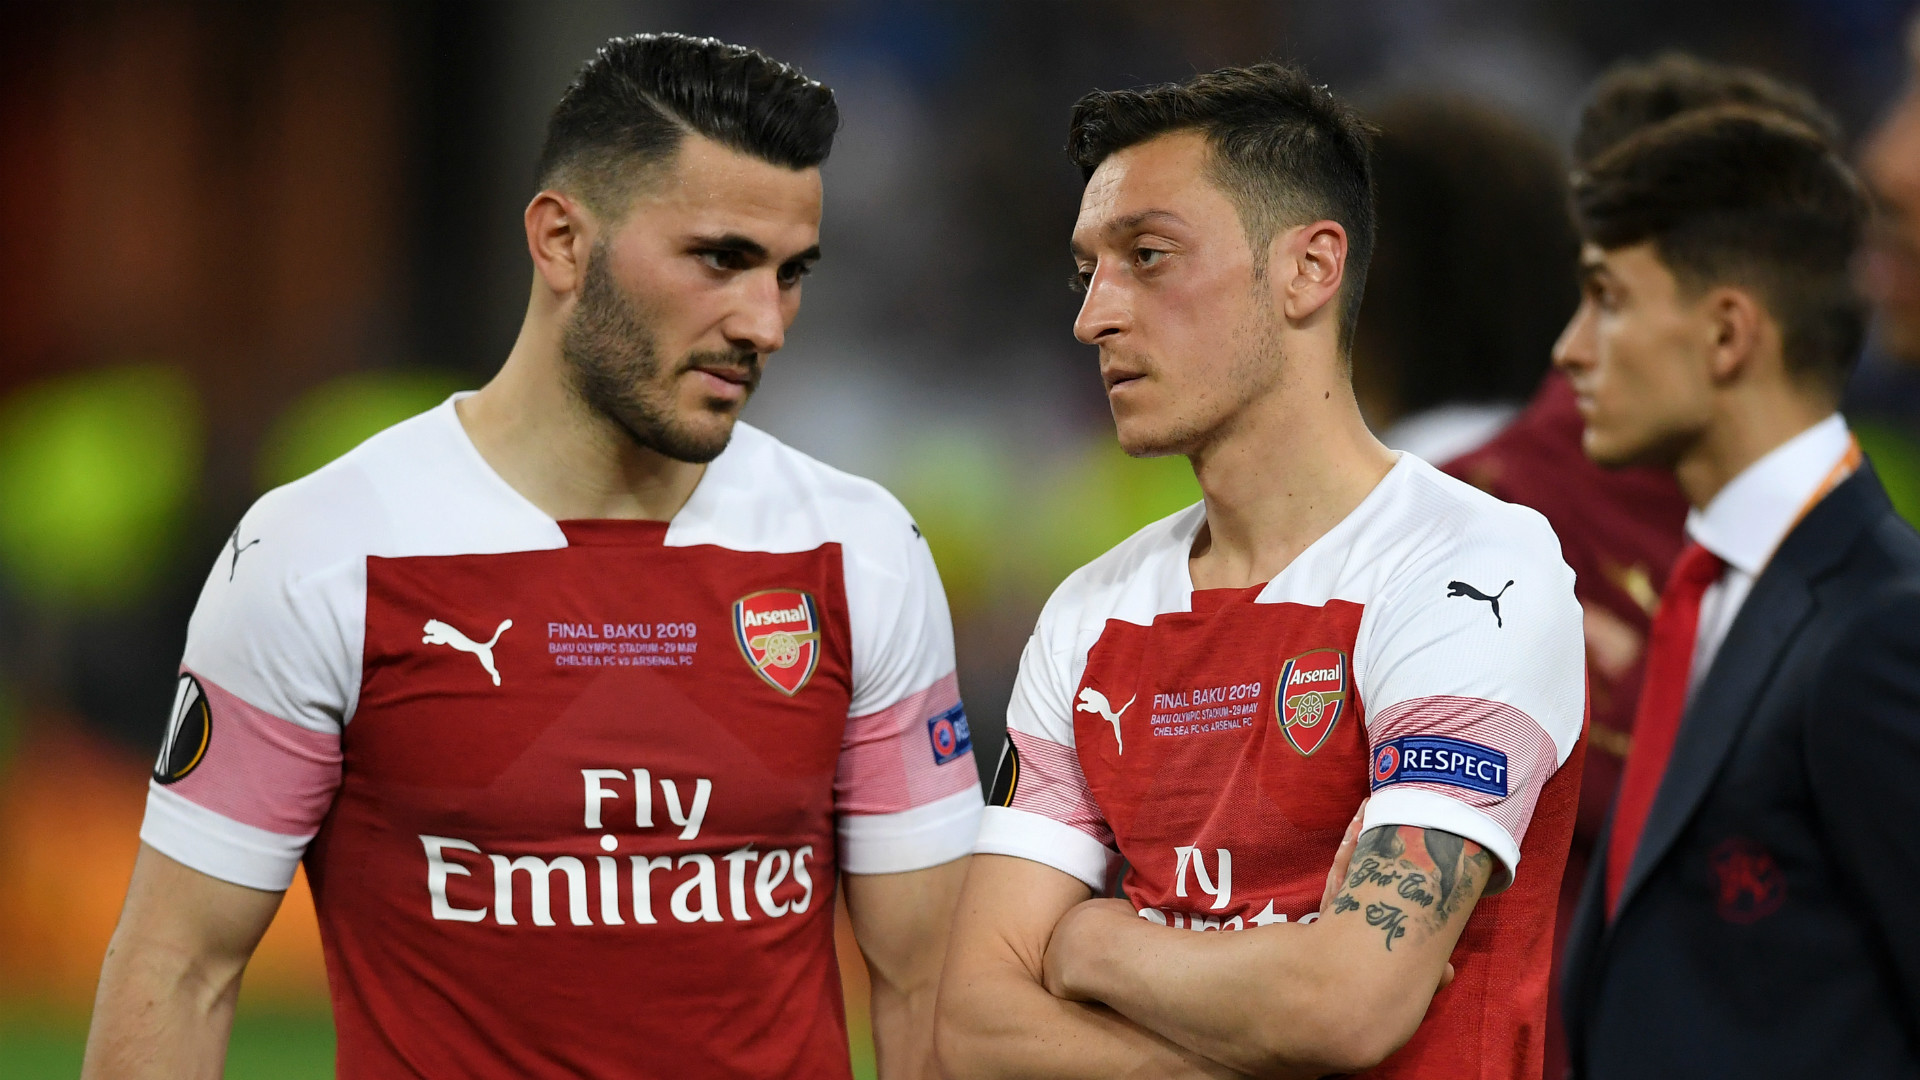 Man pleads guilty to attempted robbery of Ozil and Kolasinac